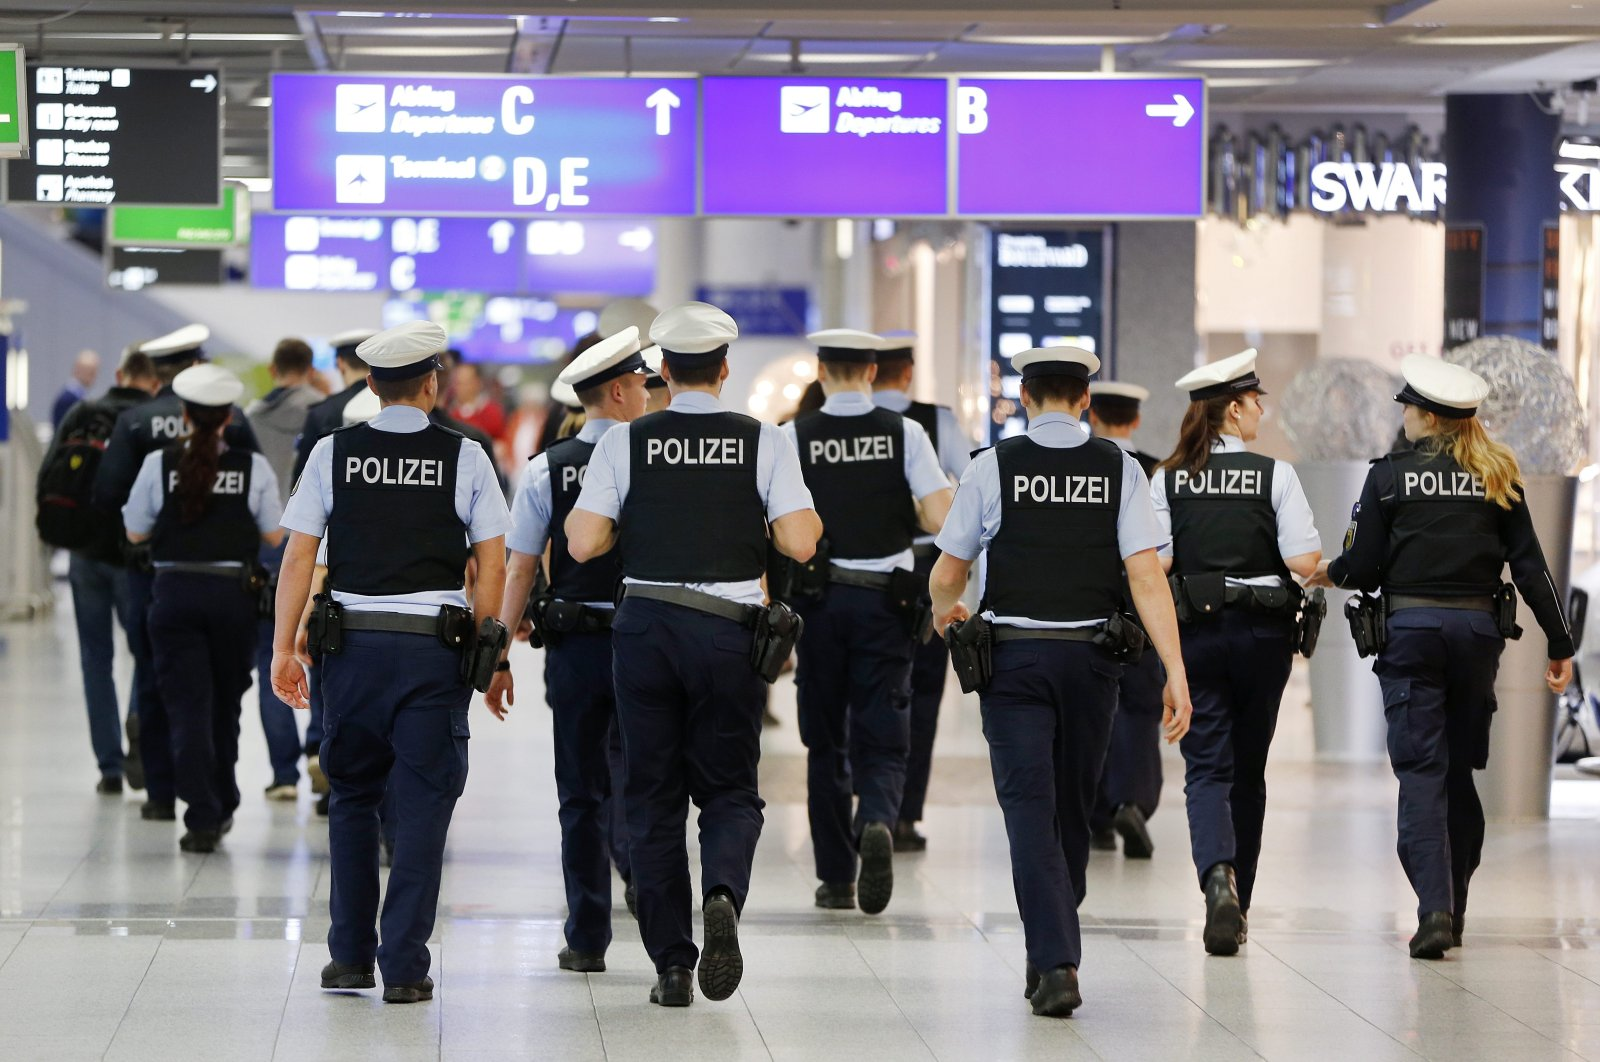 German police officers walk in a terminal at the airport, Frankfurt, Germany, March 23, 2016. (AP Photo)